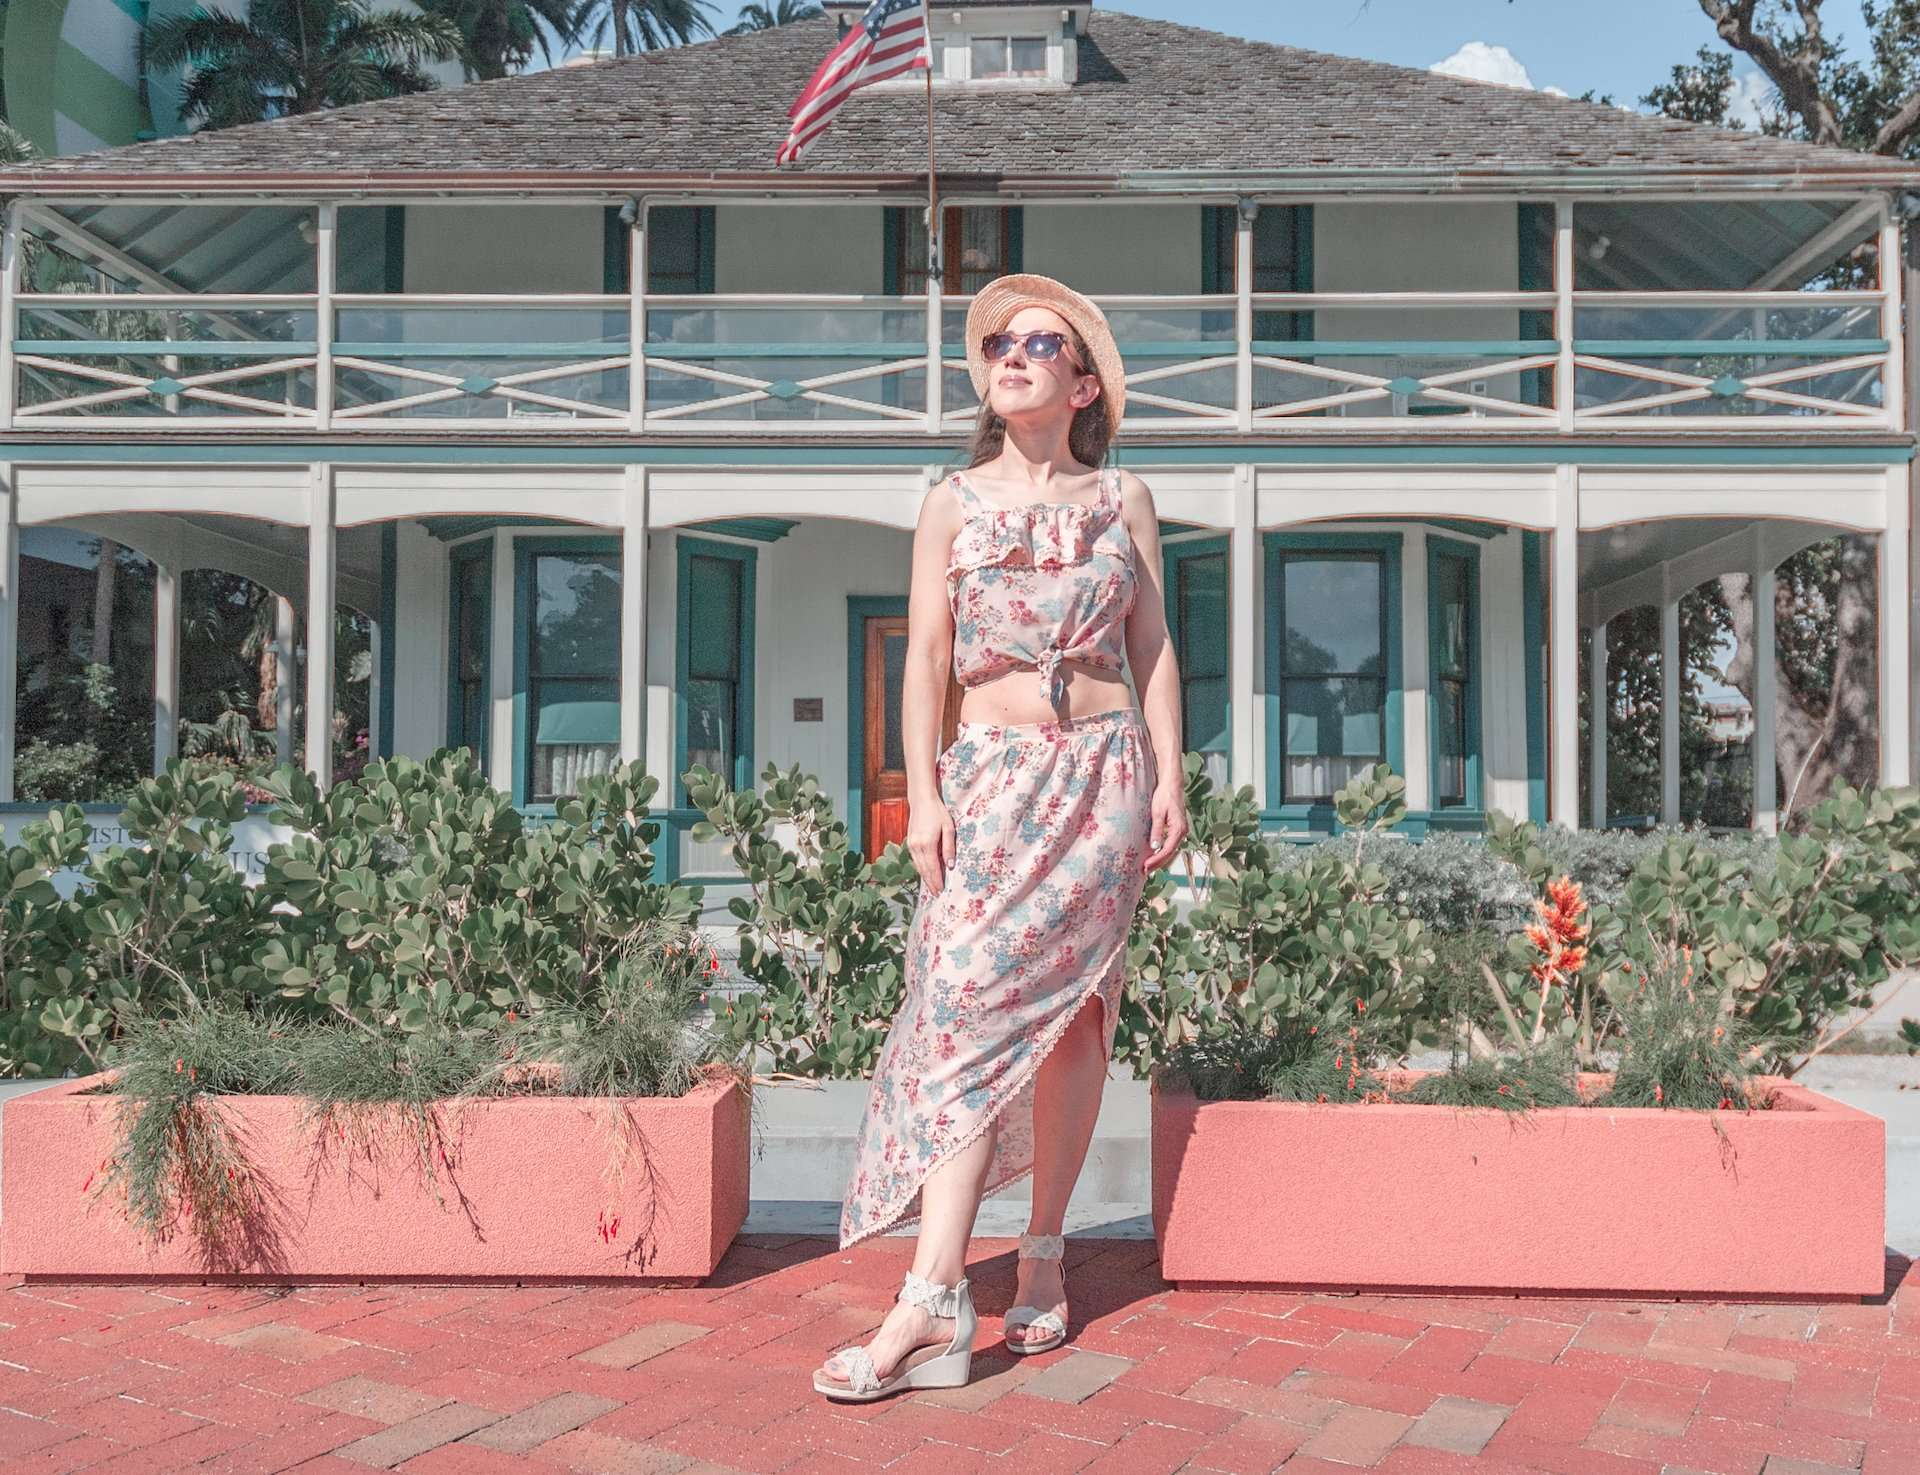 Historic Stranahan House Museum, Fort Lauderdale